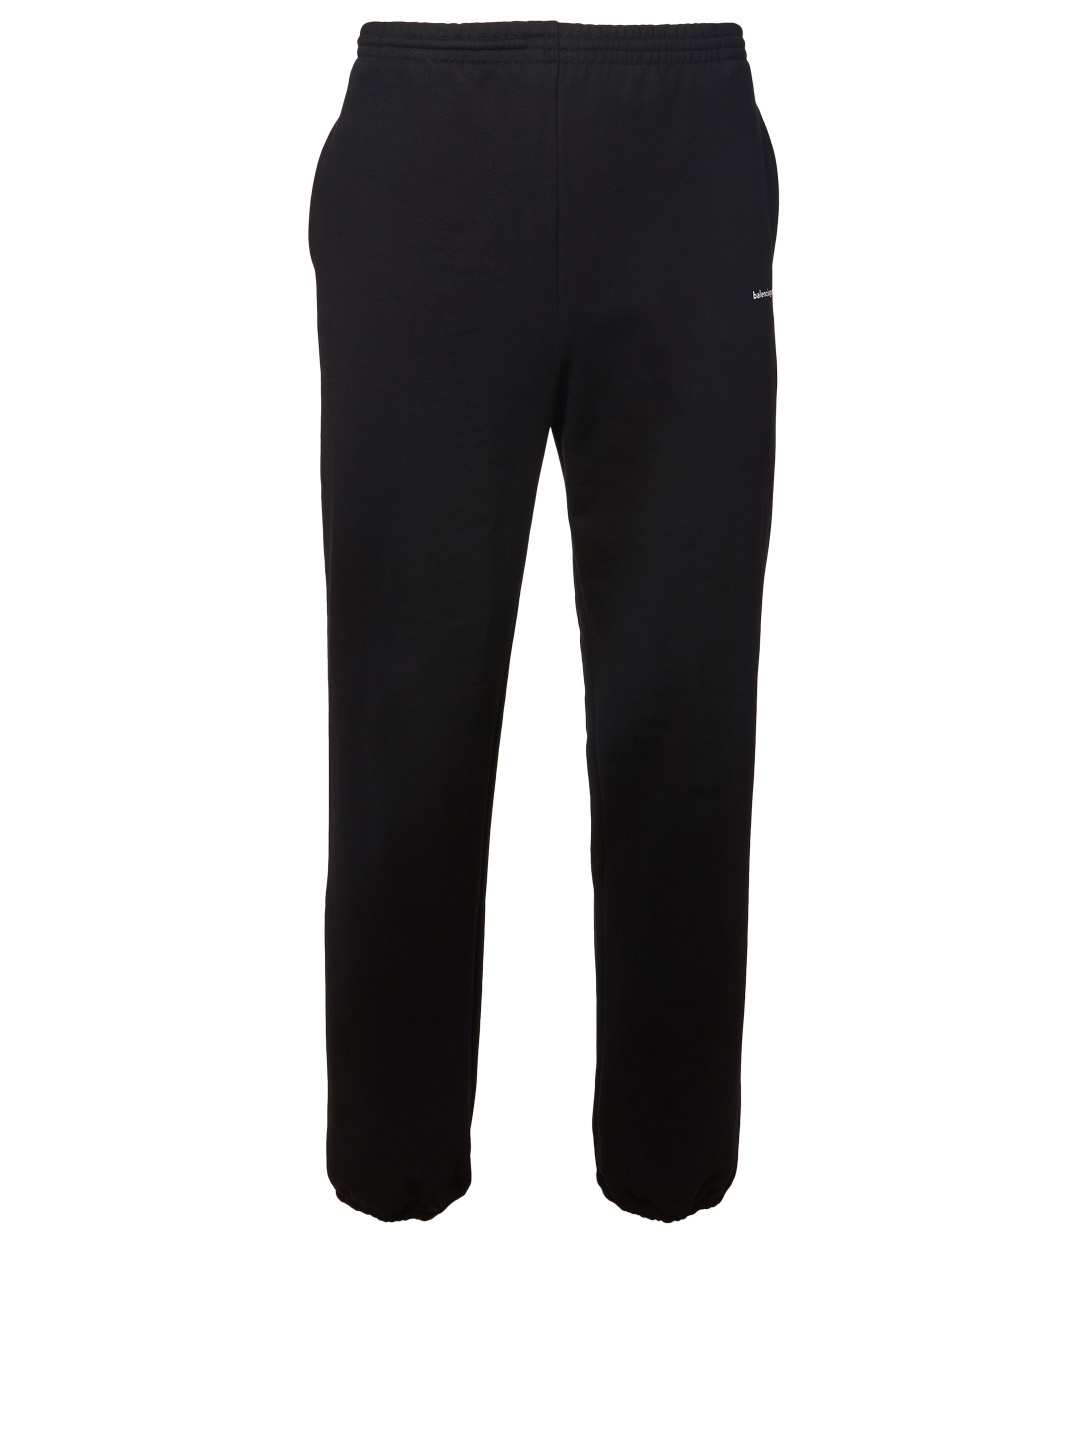 fbaf04d1e6c28e BALENCIAGA Copyright Logo Sweatpants Men's Black ...